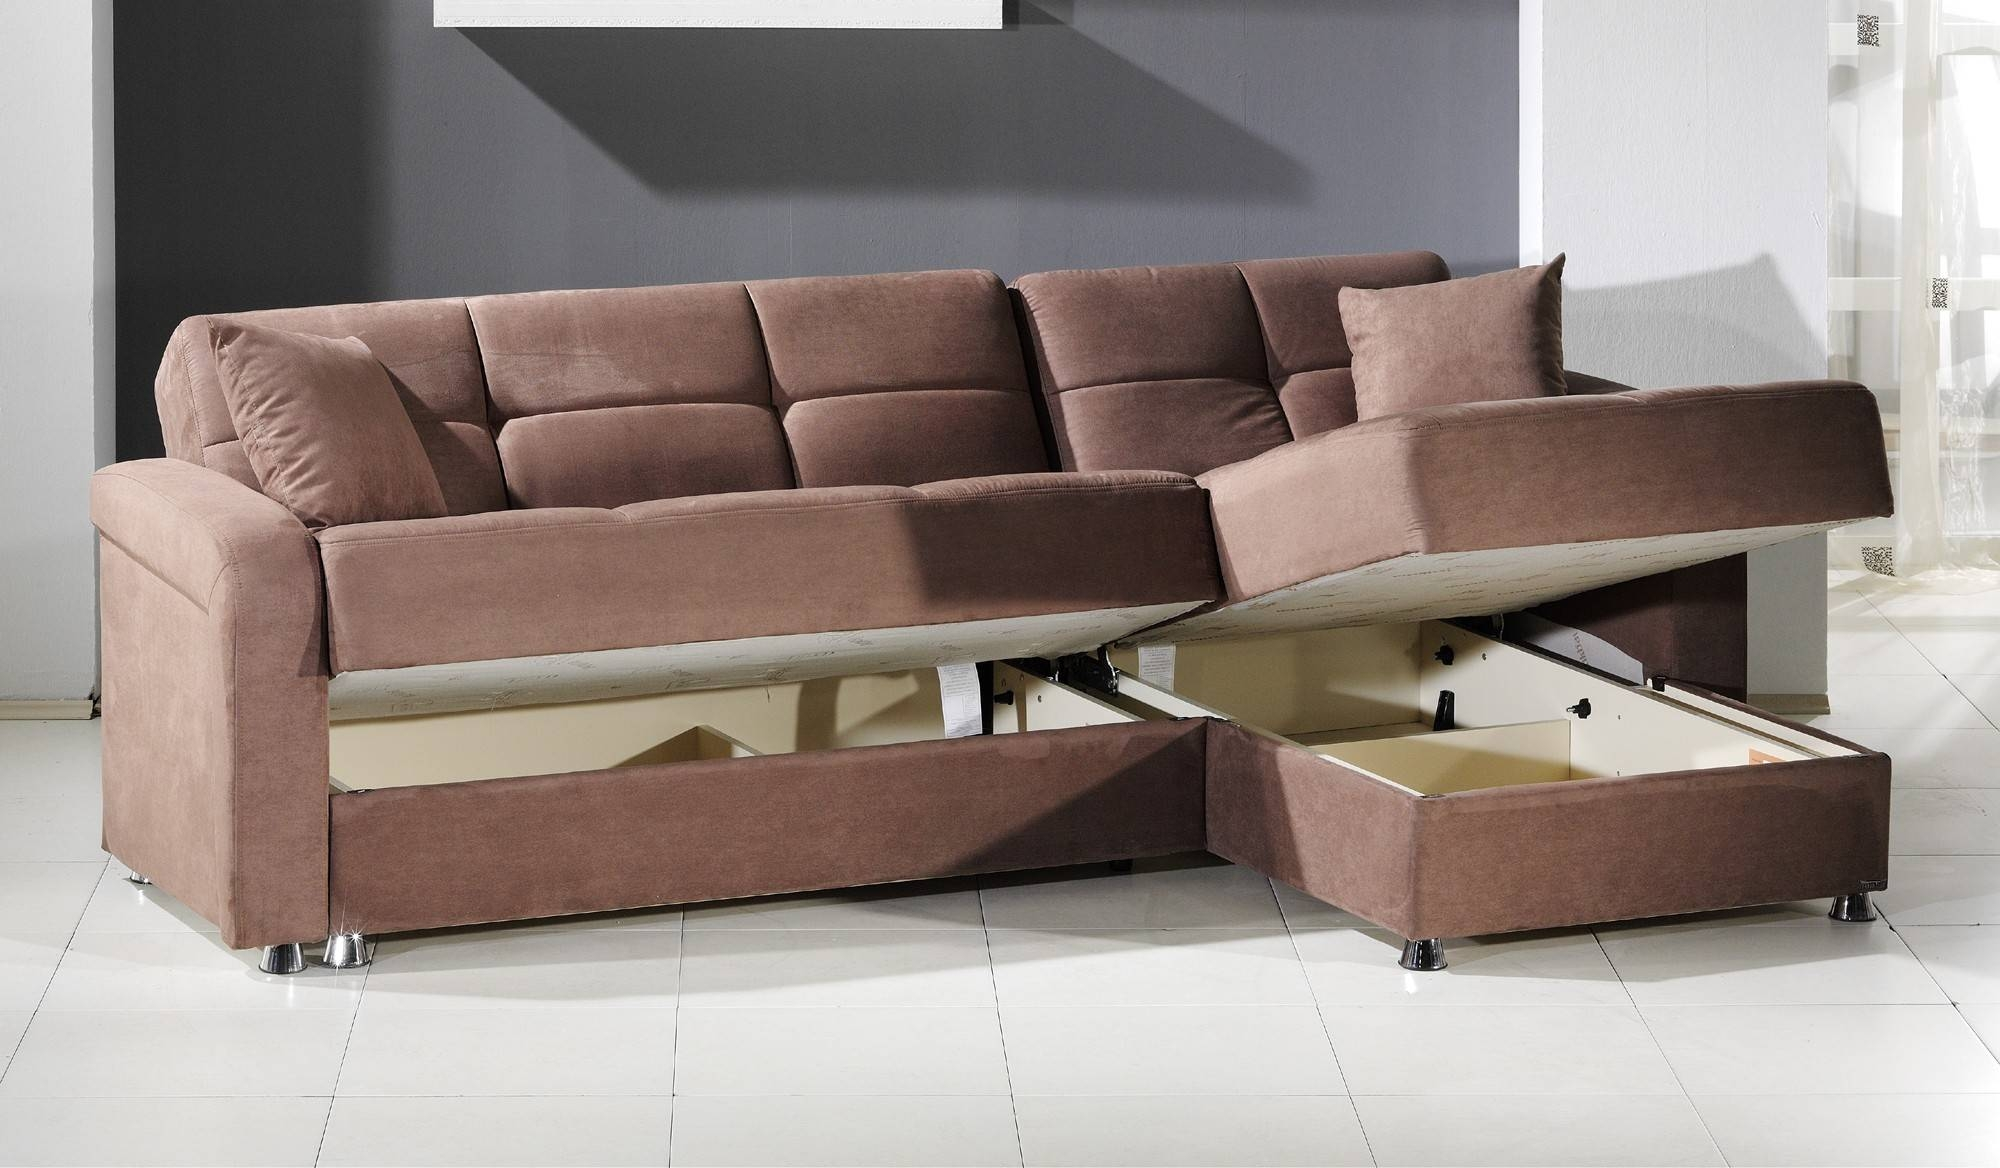 Vision Convertible Sectional Sofa In Rainbow Truffleistikbal pertaining to Convertible Sectional Sofas (Image 30 of 30)